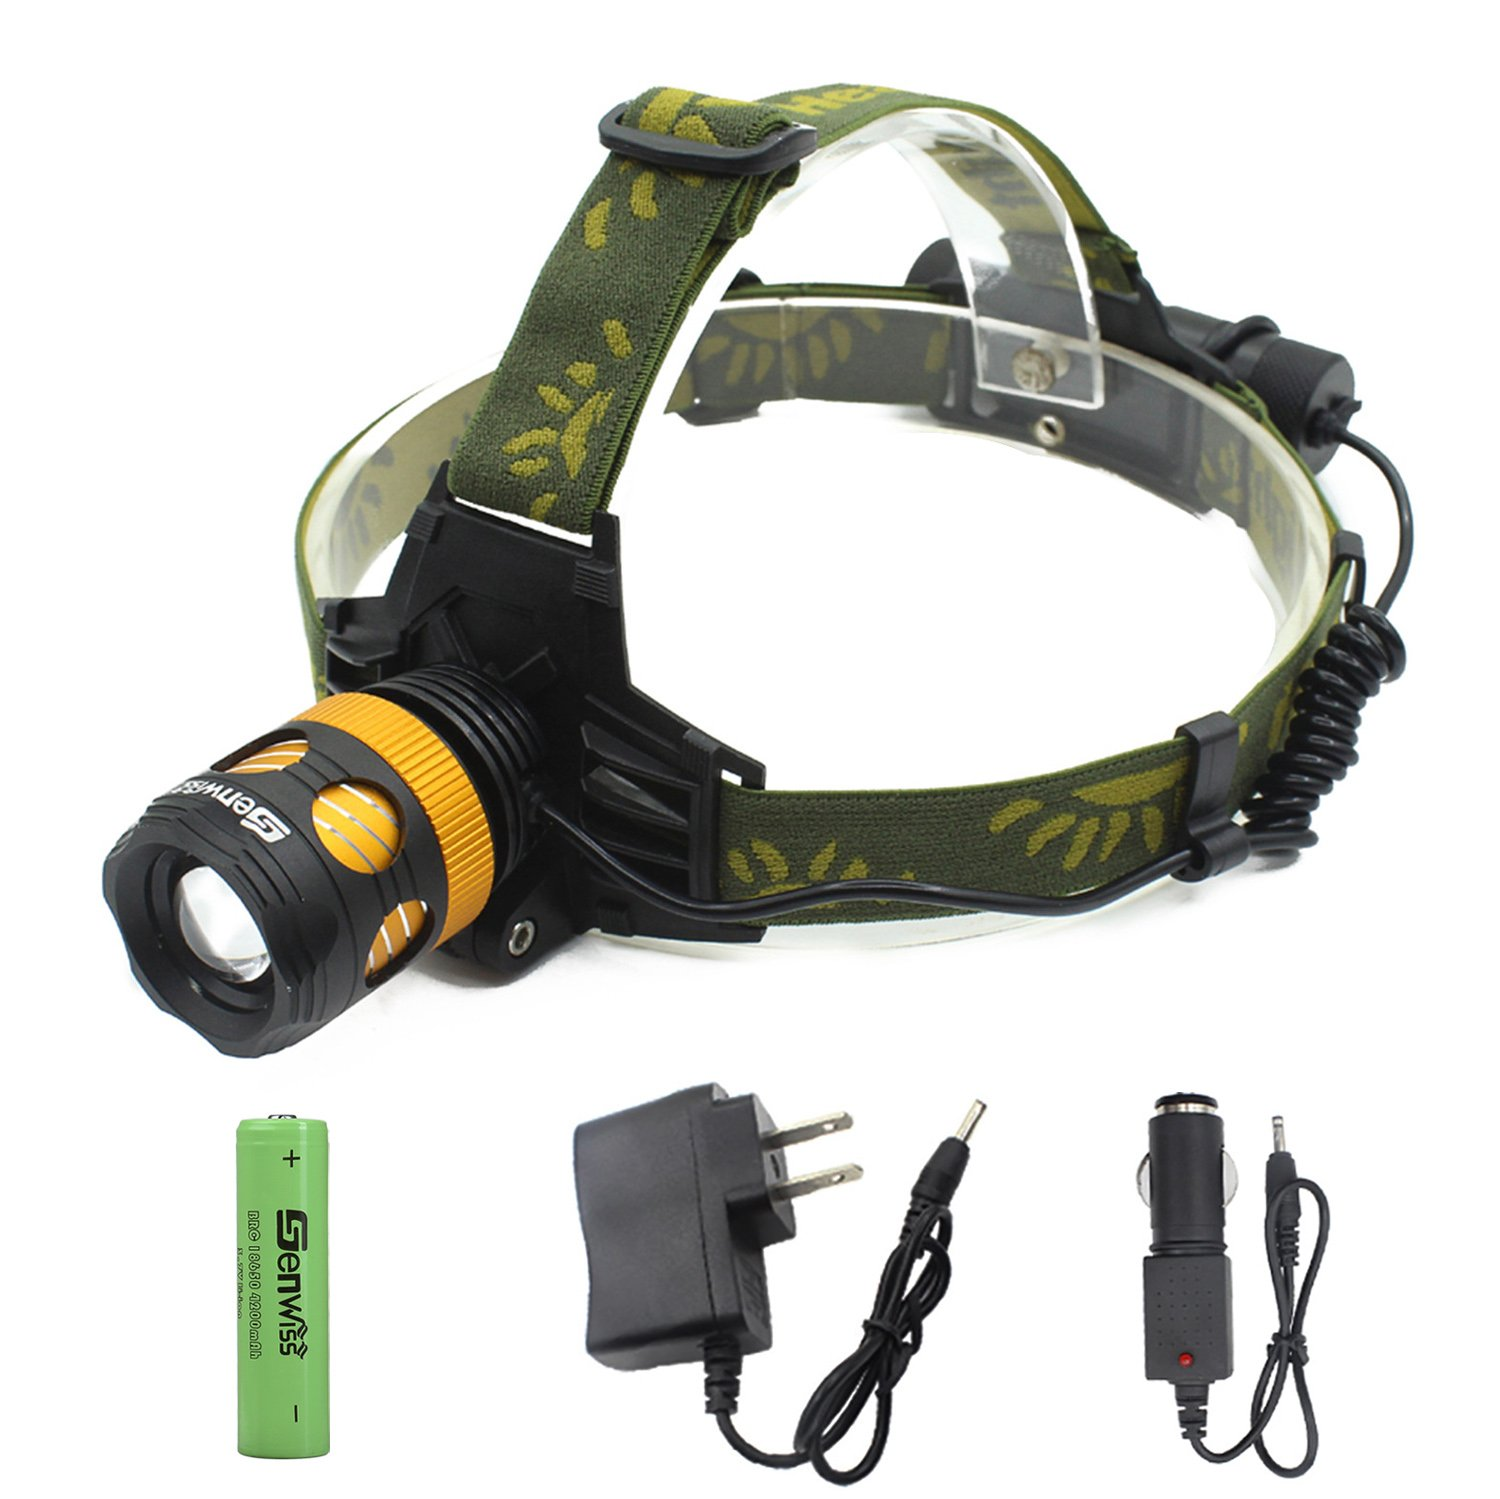 LED Headlamp FLashlight - Genwiss Waterproof Headlight Super Bright XML T6 LED Zoom Focus Front Light Zoomable Torch 3 Modes 3000 Lumen for Camping Biking Working Hunting Fishing Riding Walking(Gold)